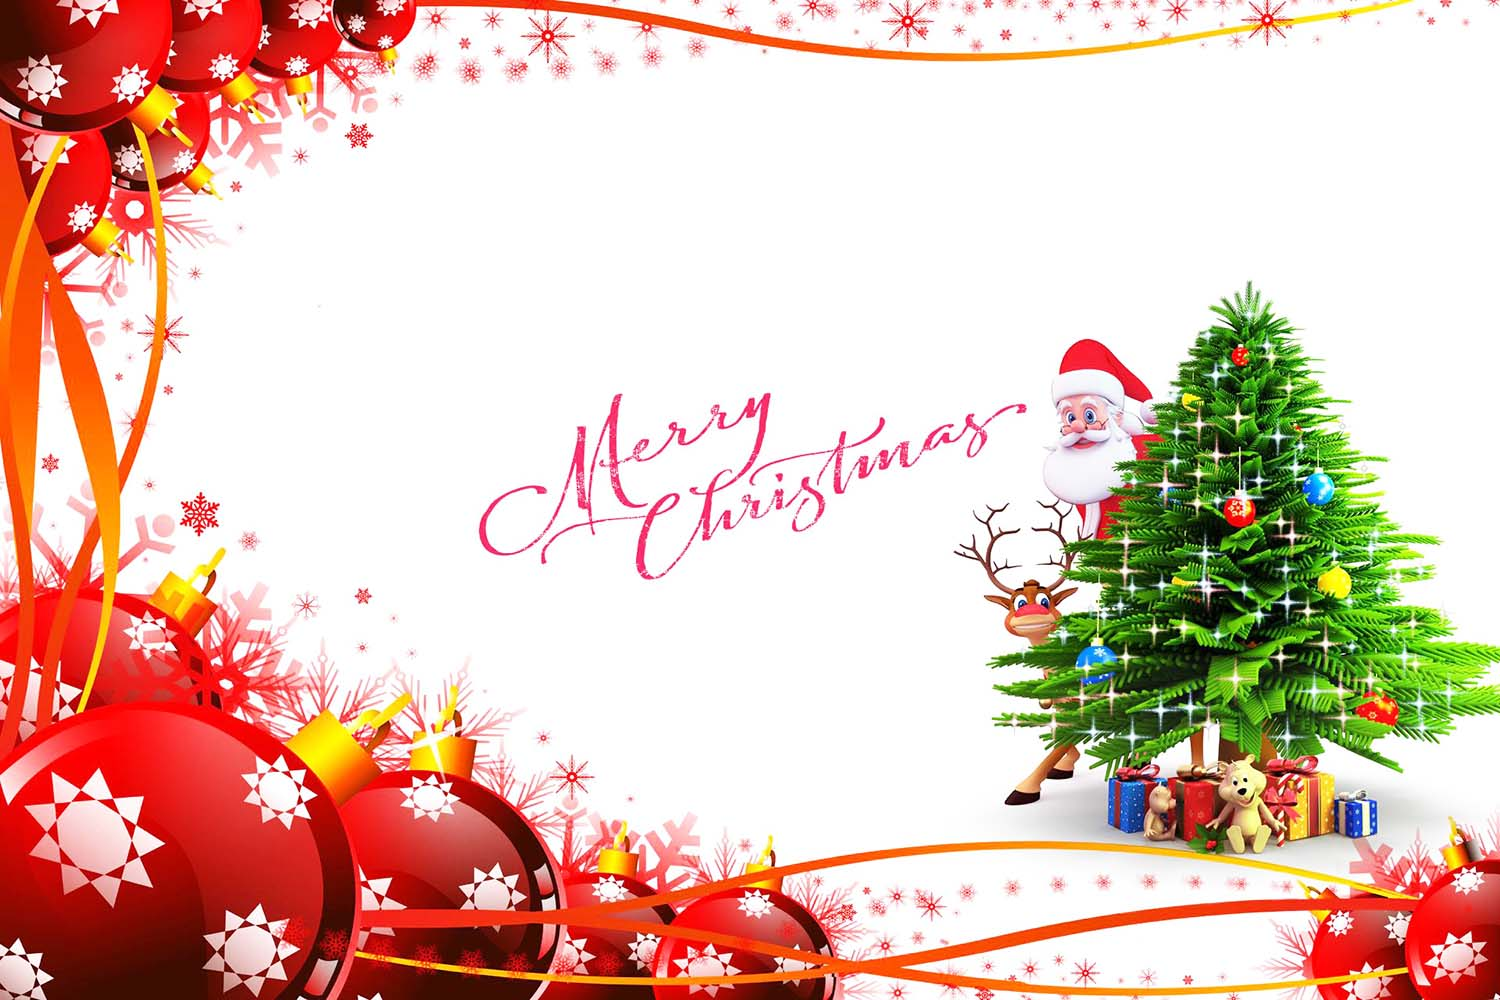 wishing merry christmas